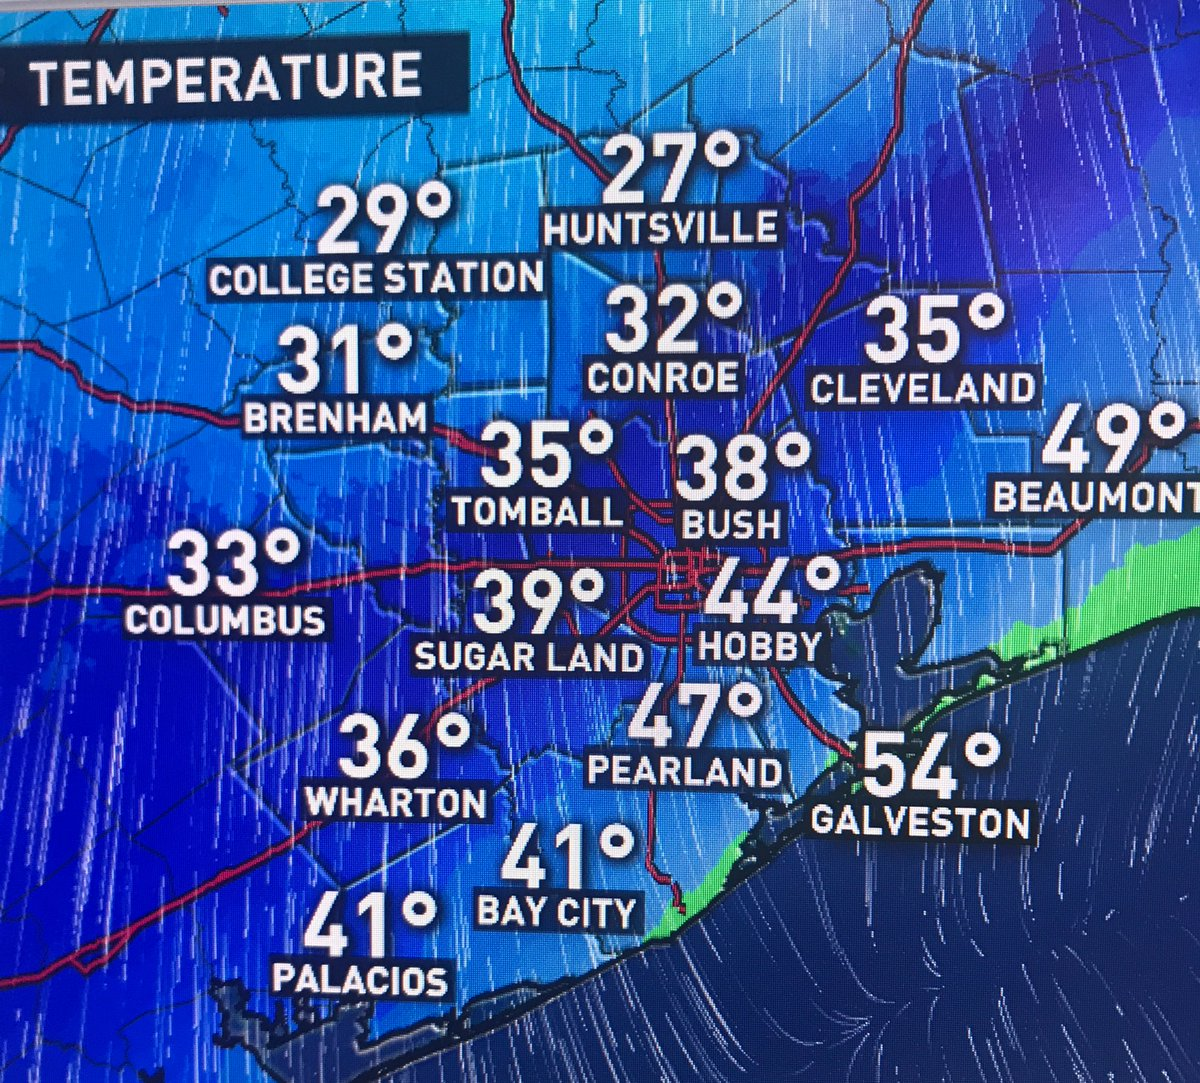 Front offshore... temps are dropping FAST!!!! The rain.. wintry mix falling now could turn to ice. Major impacts across the area come Lunchtime and afternoon. #HoustonWeather #WinterStormWarning if you can don't get on the roads <br>http://pic.twitter.com/v2100GBHVP